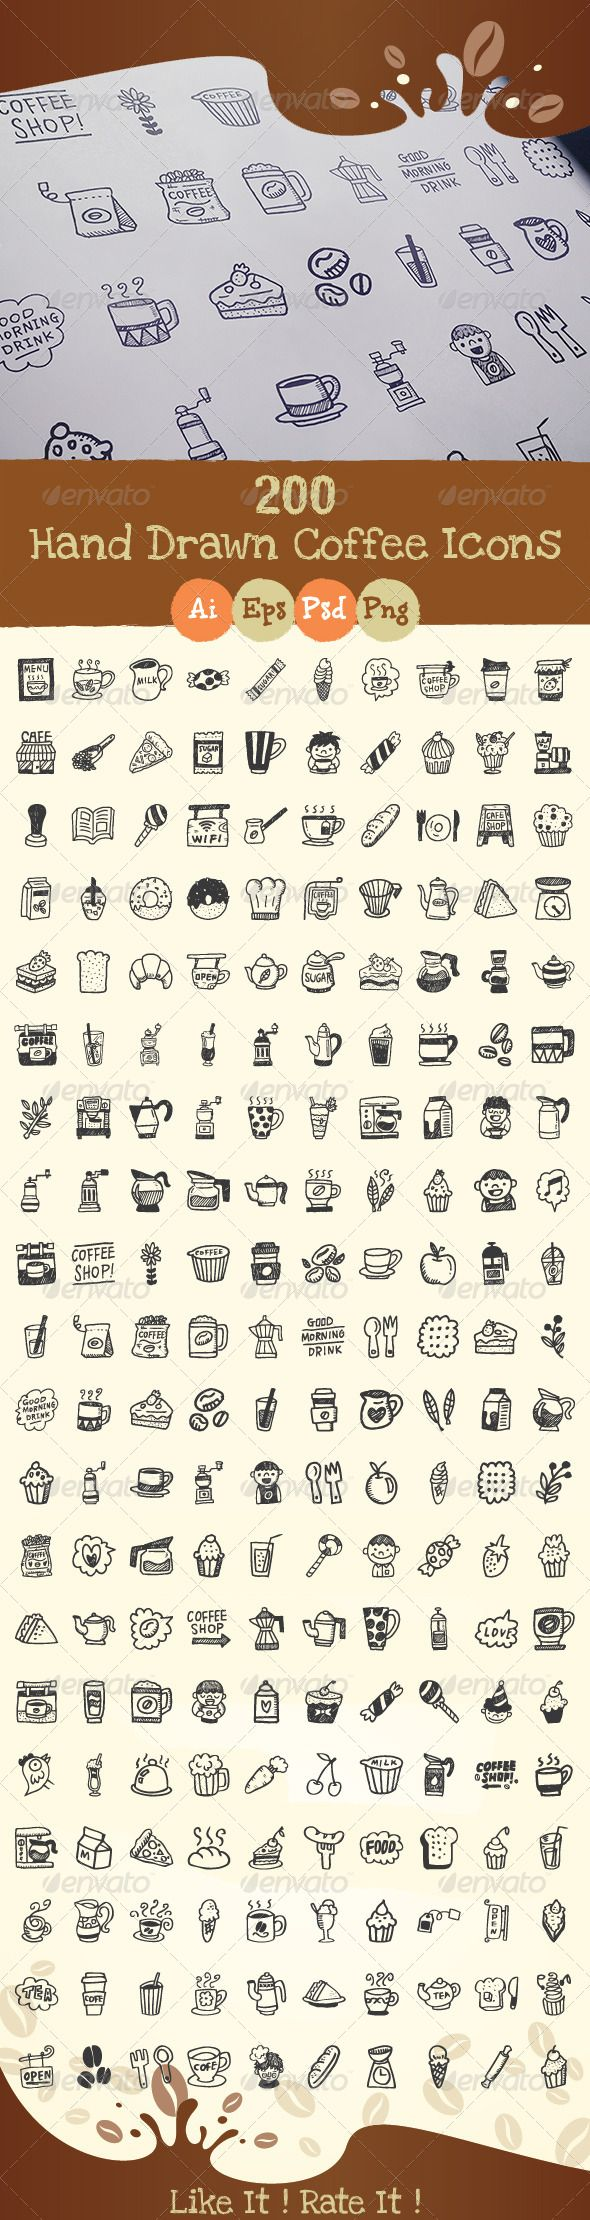 200+Hand+Drawn+Coffee+Icons